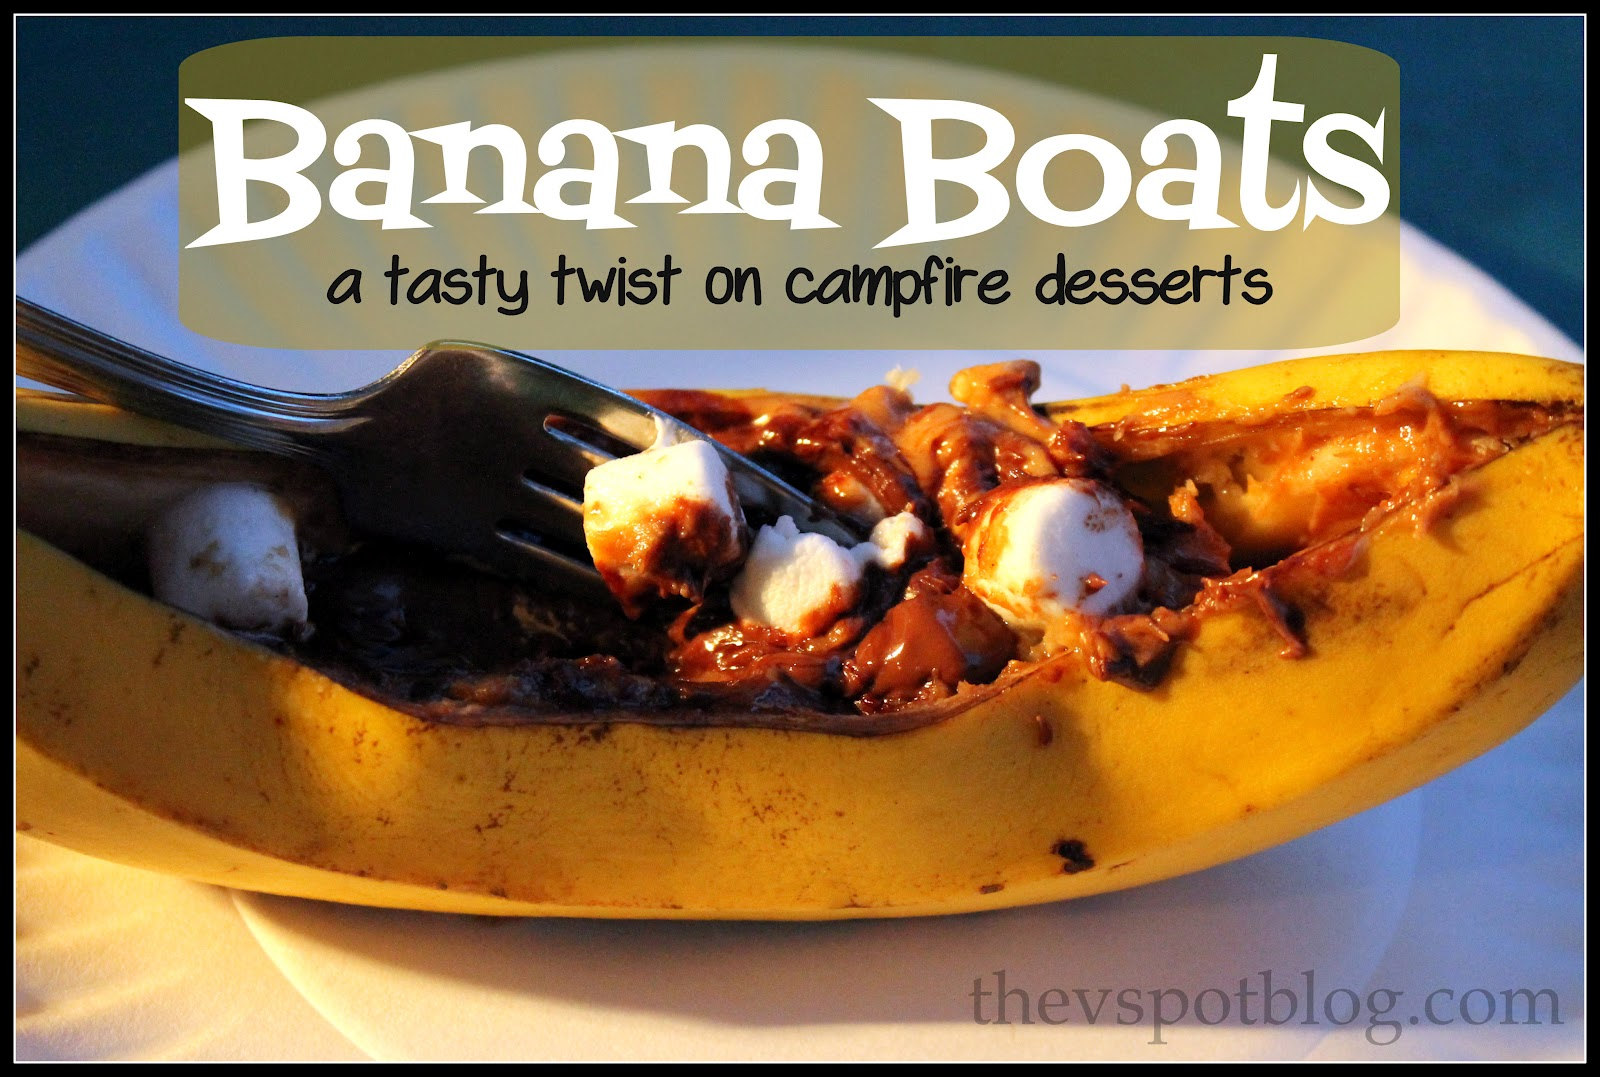 Banana Boats A Tasty Twist On Campfire Desserts